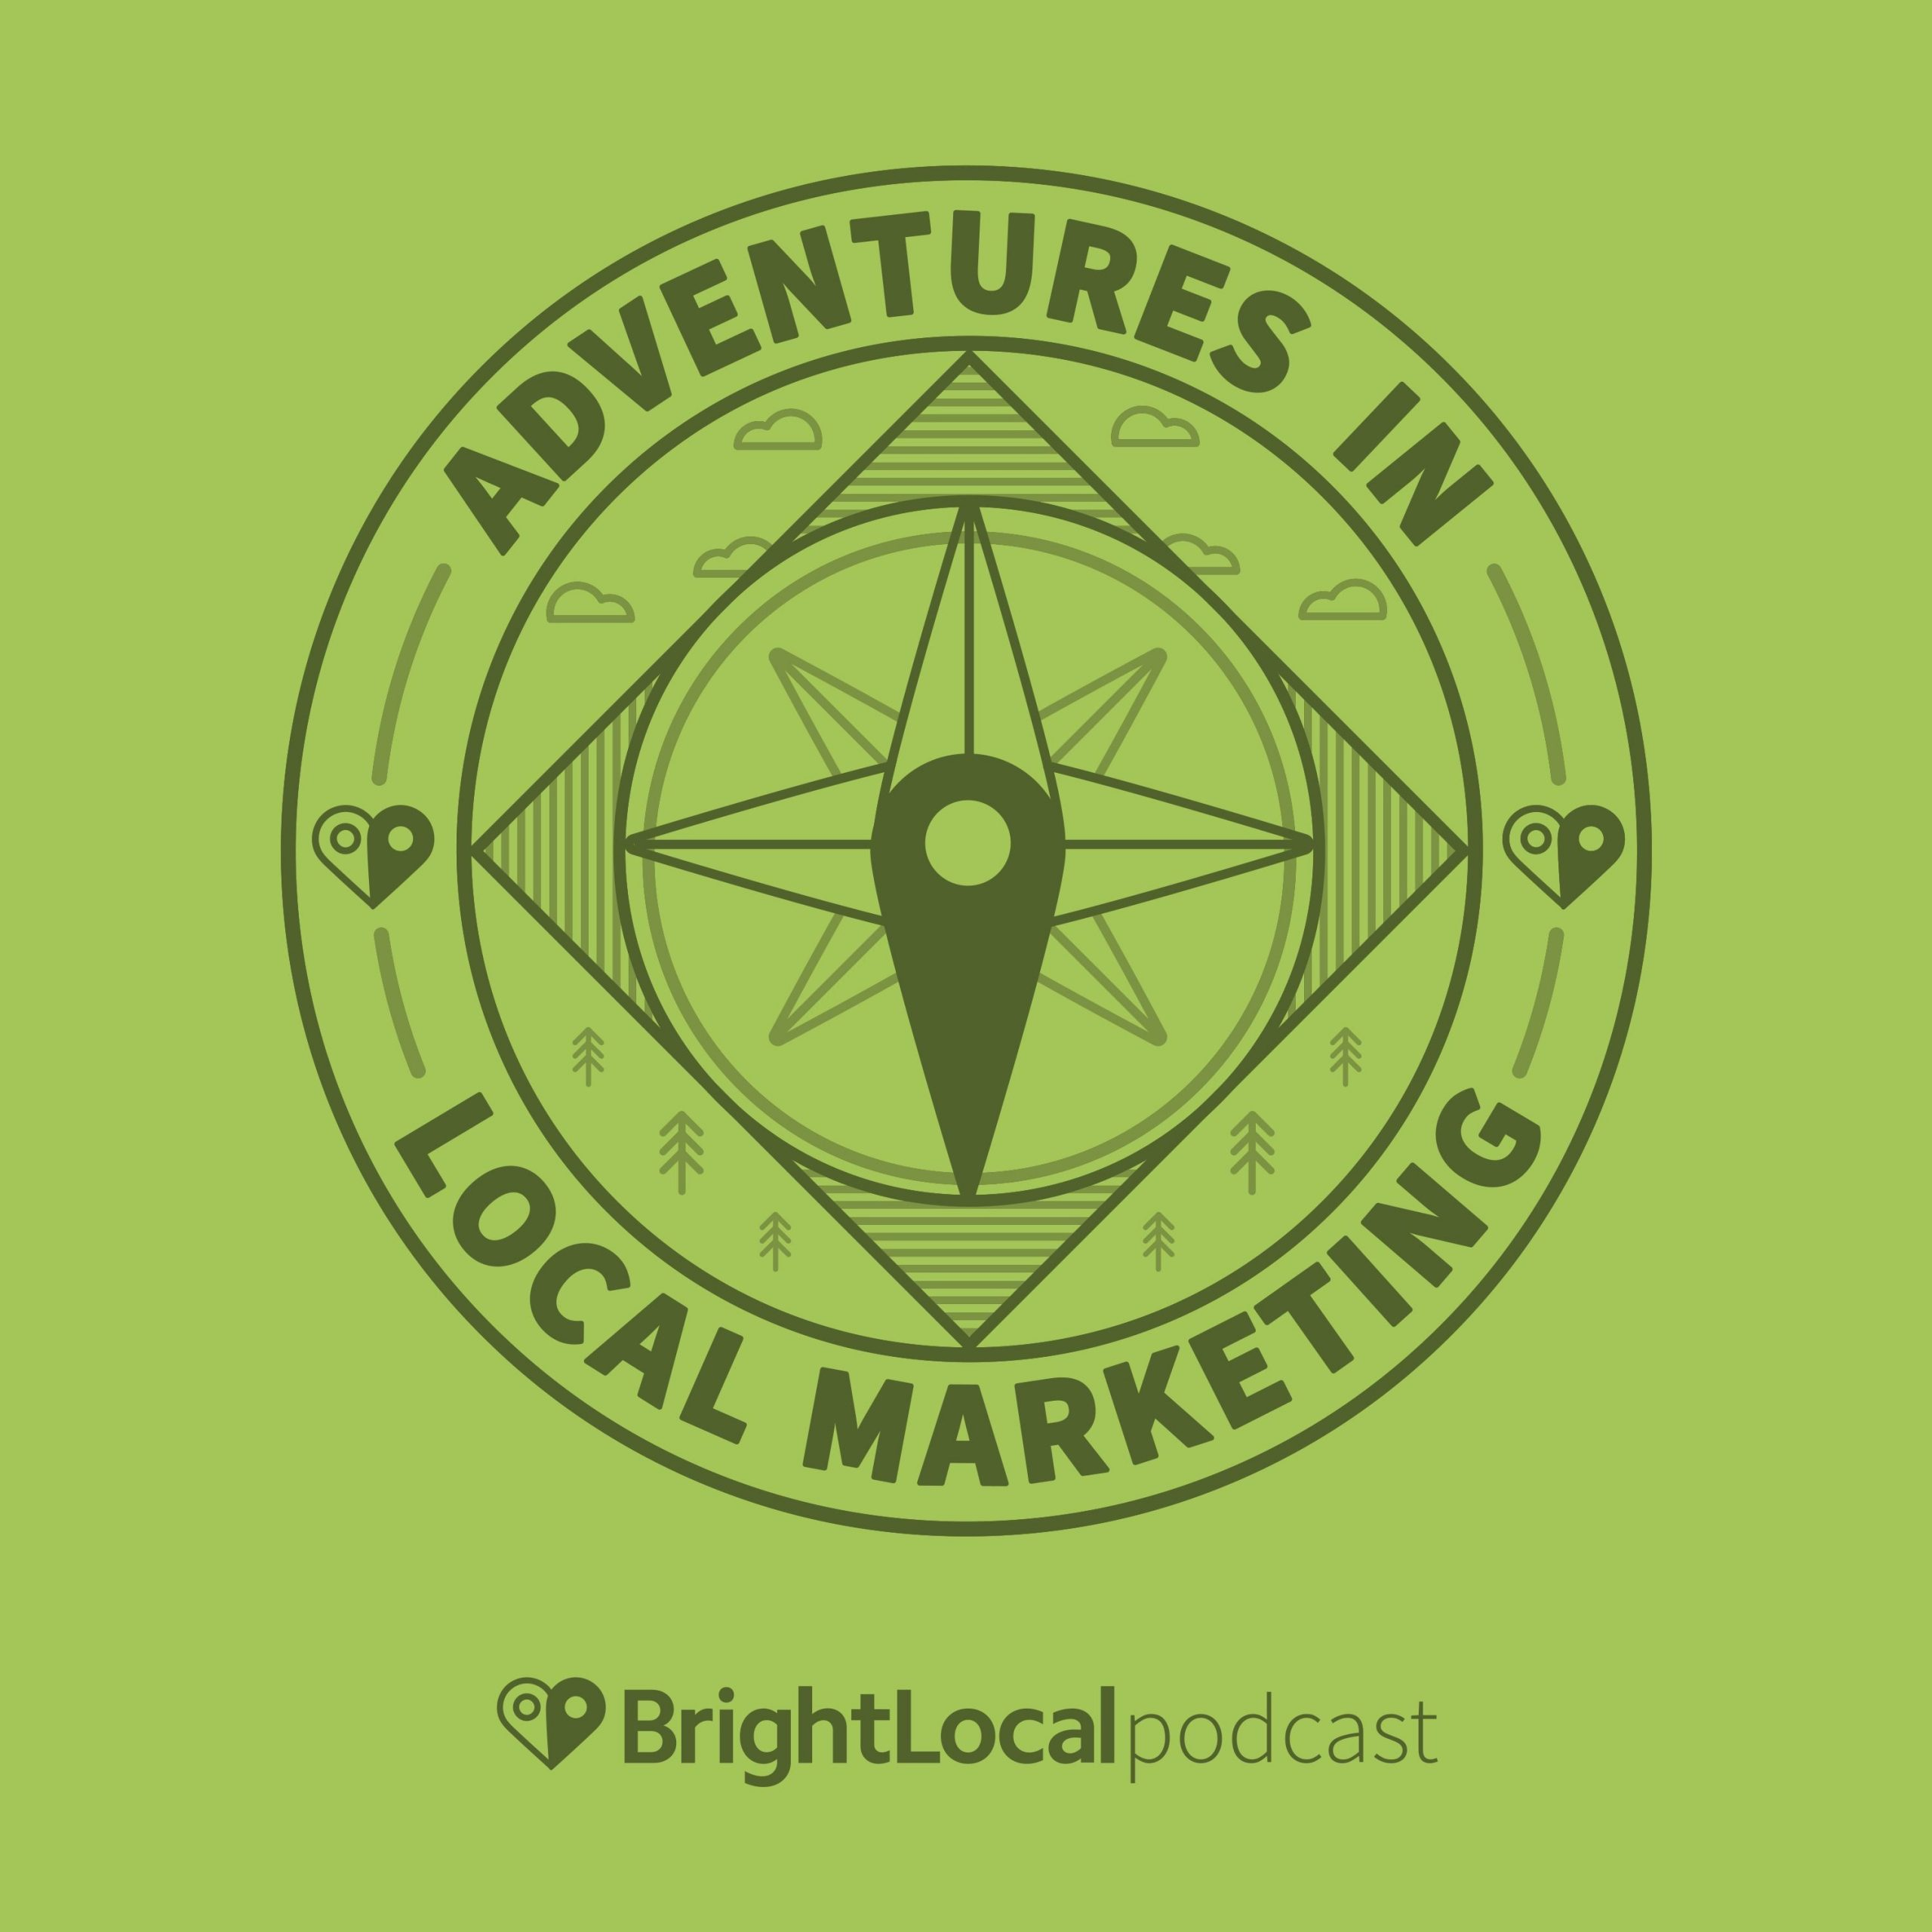 Adventures in Local - BrightLocal Podcast